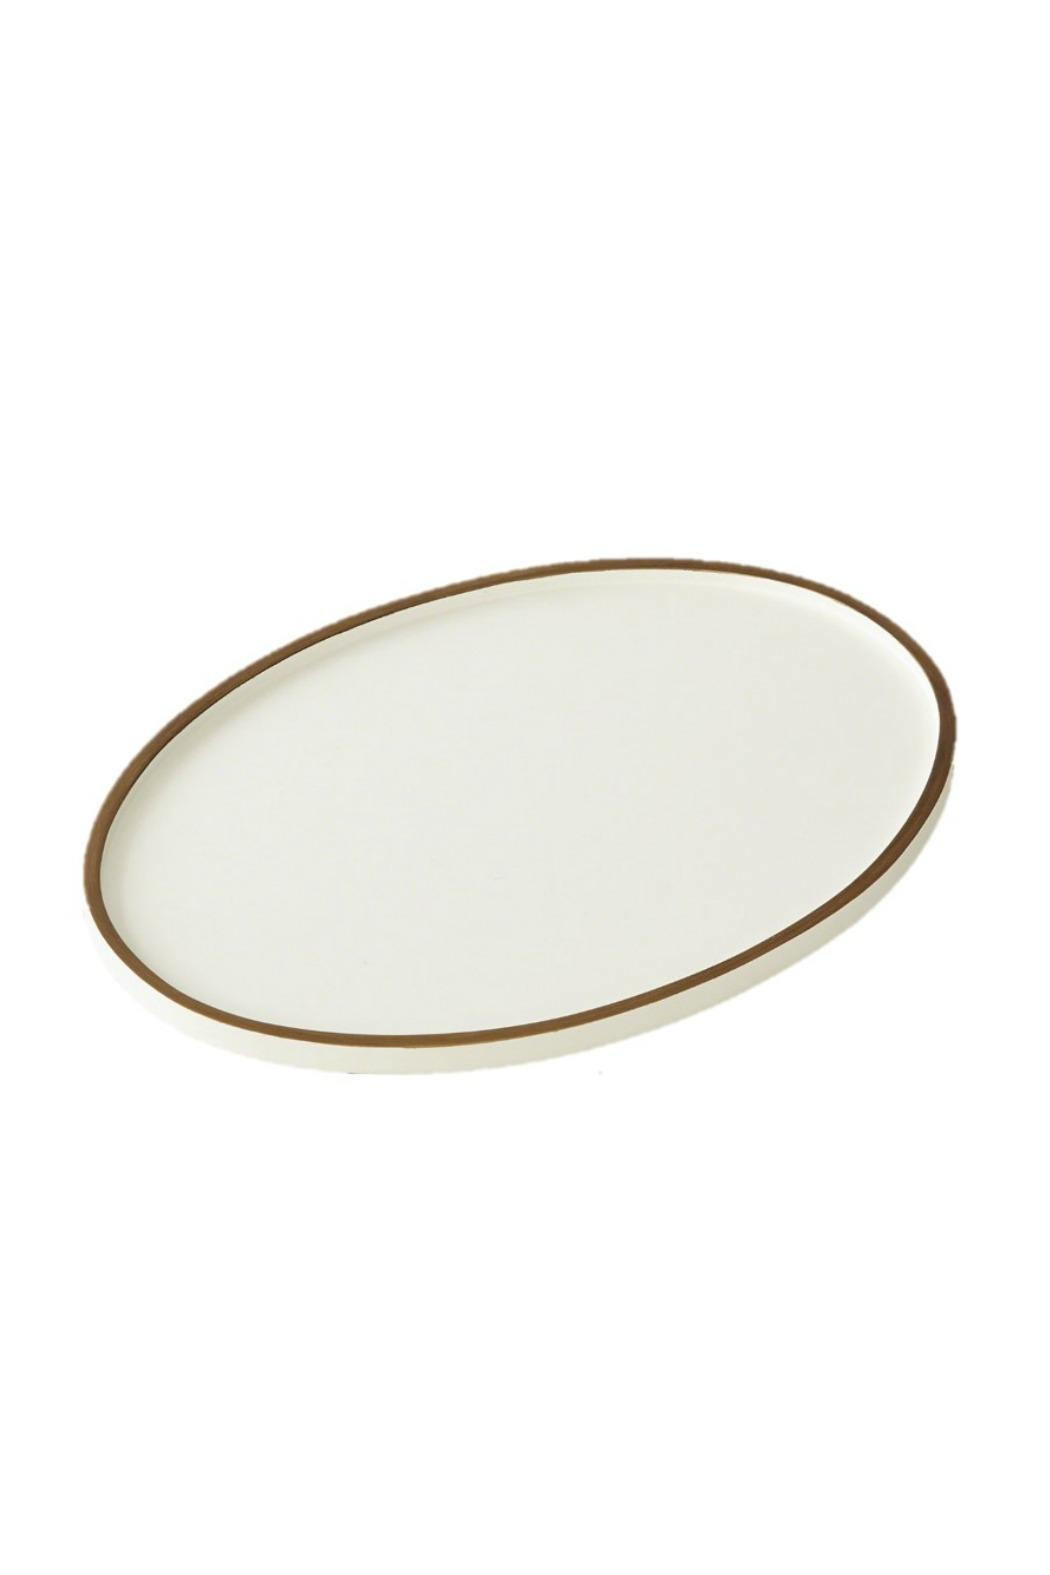 Heather Scott Home & Design Oval Drink Tray - Main Image